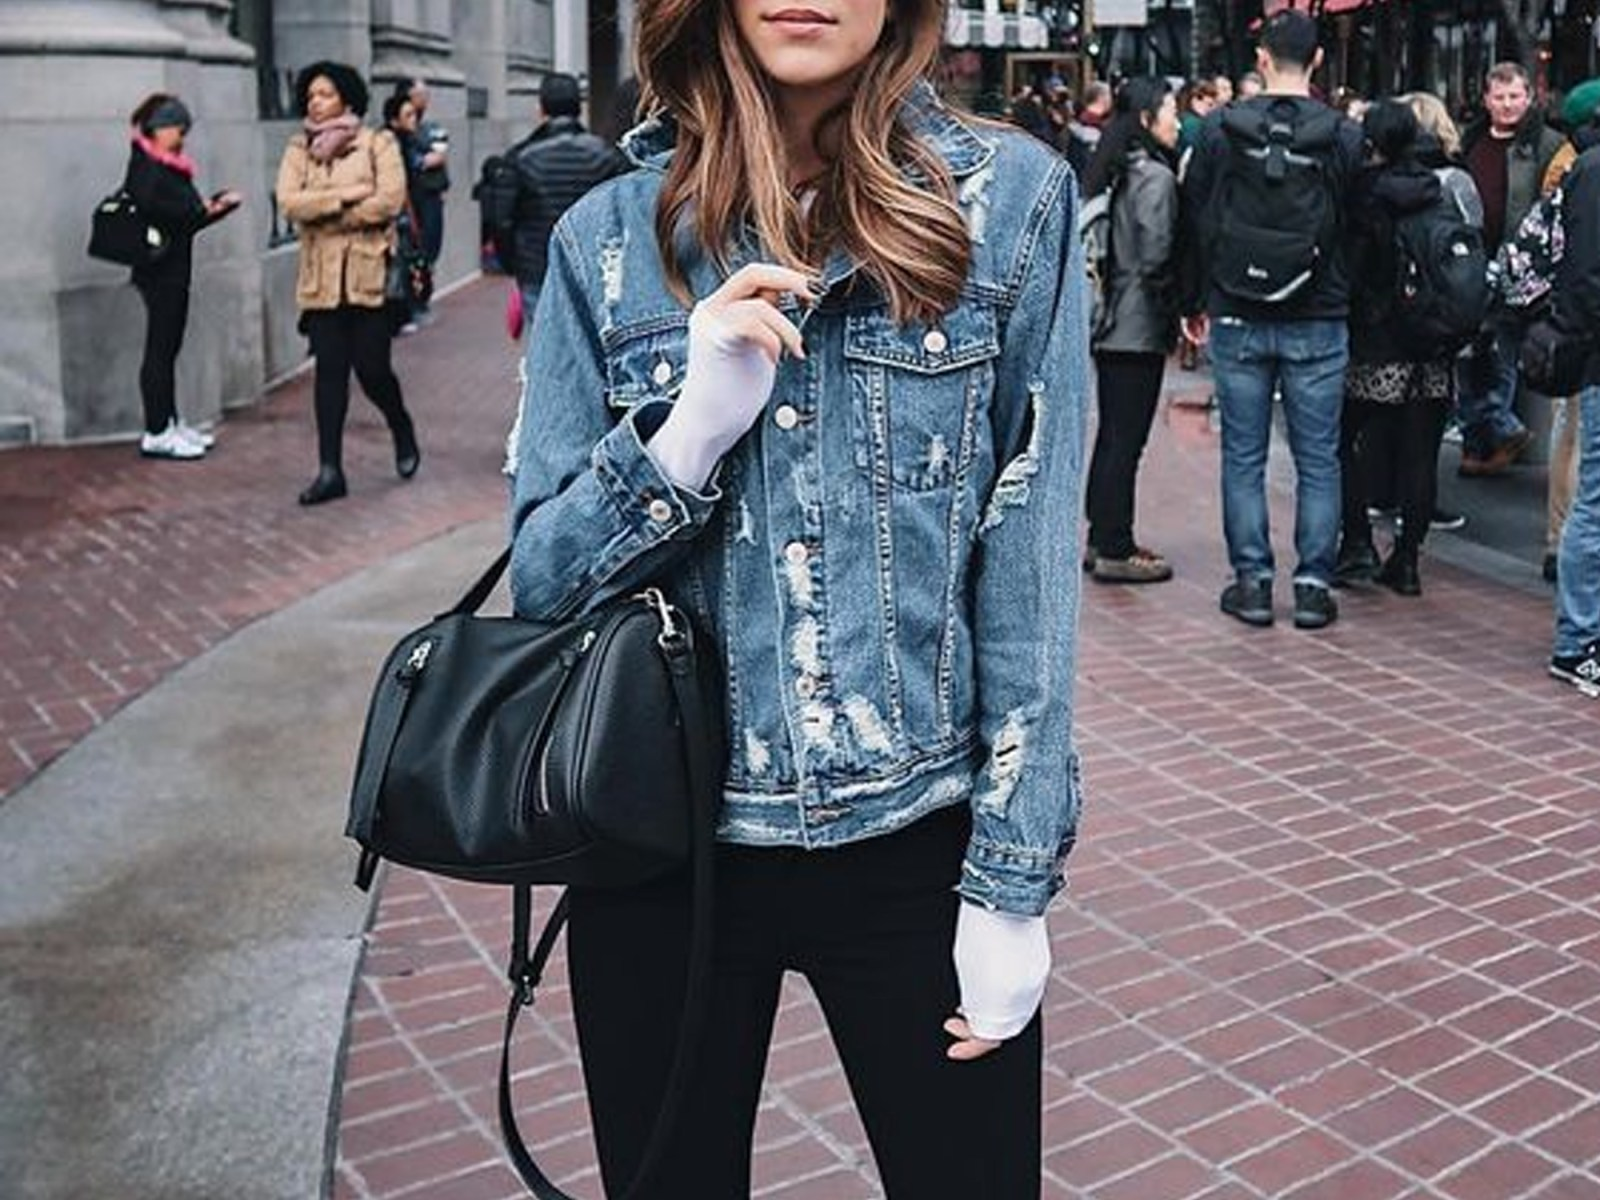 If you live in London, you'll definitely want to be wearing these fashion essentials come spring time. These wardrobe must haves are the perfect staple pieces when it comes to spring street style. You won't want to miss out!